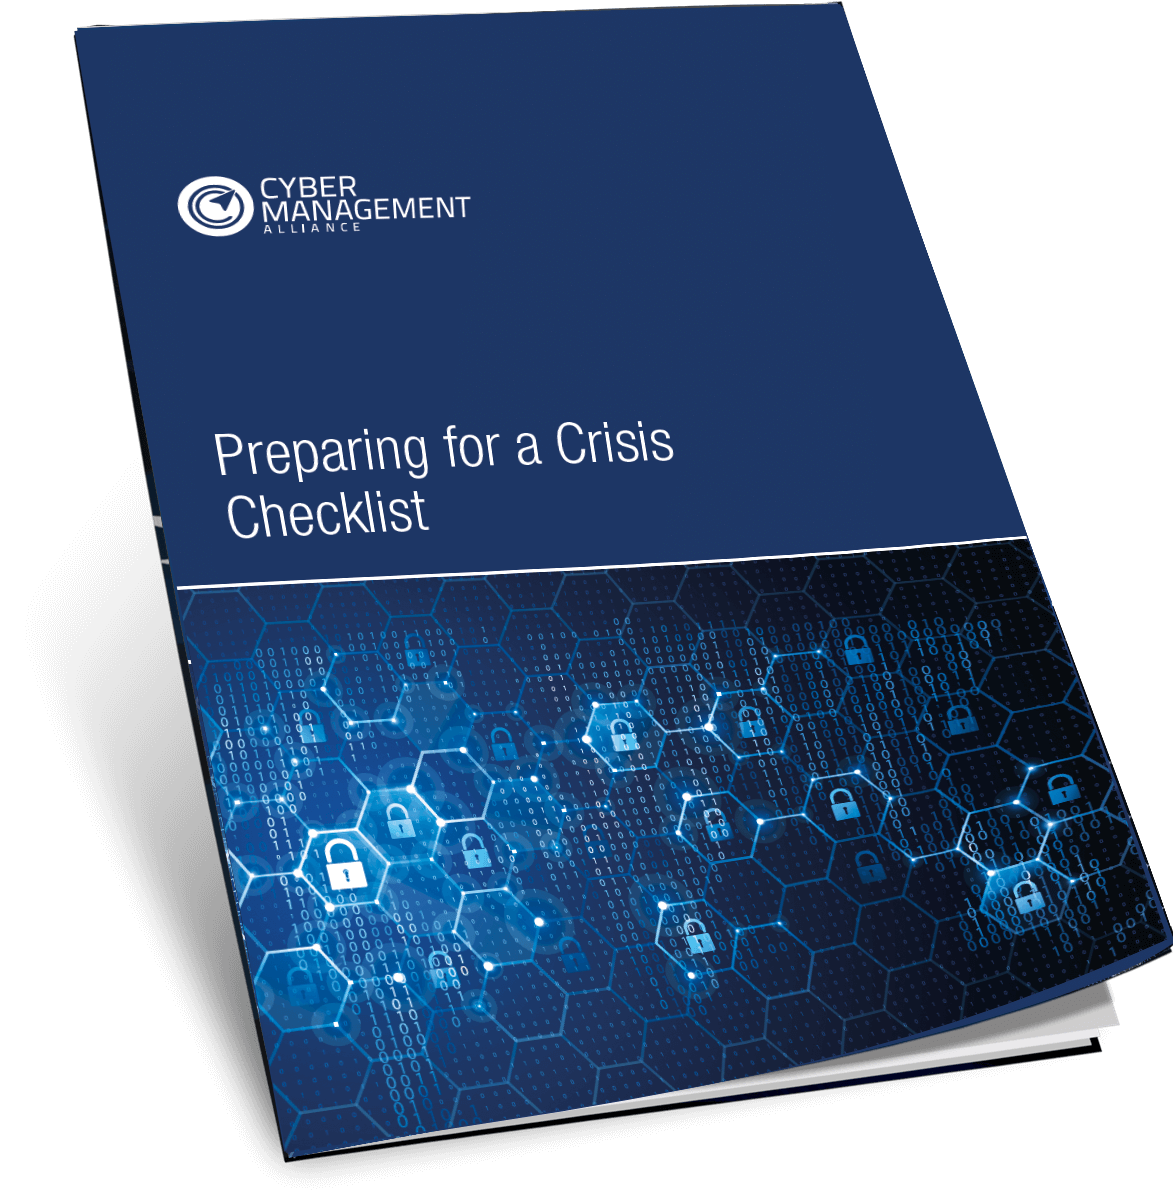 Preparing for a Crisis Checklist